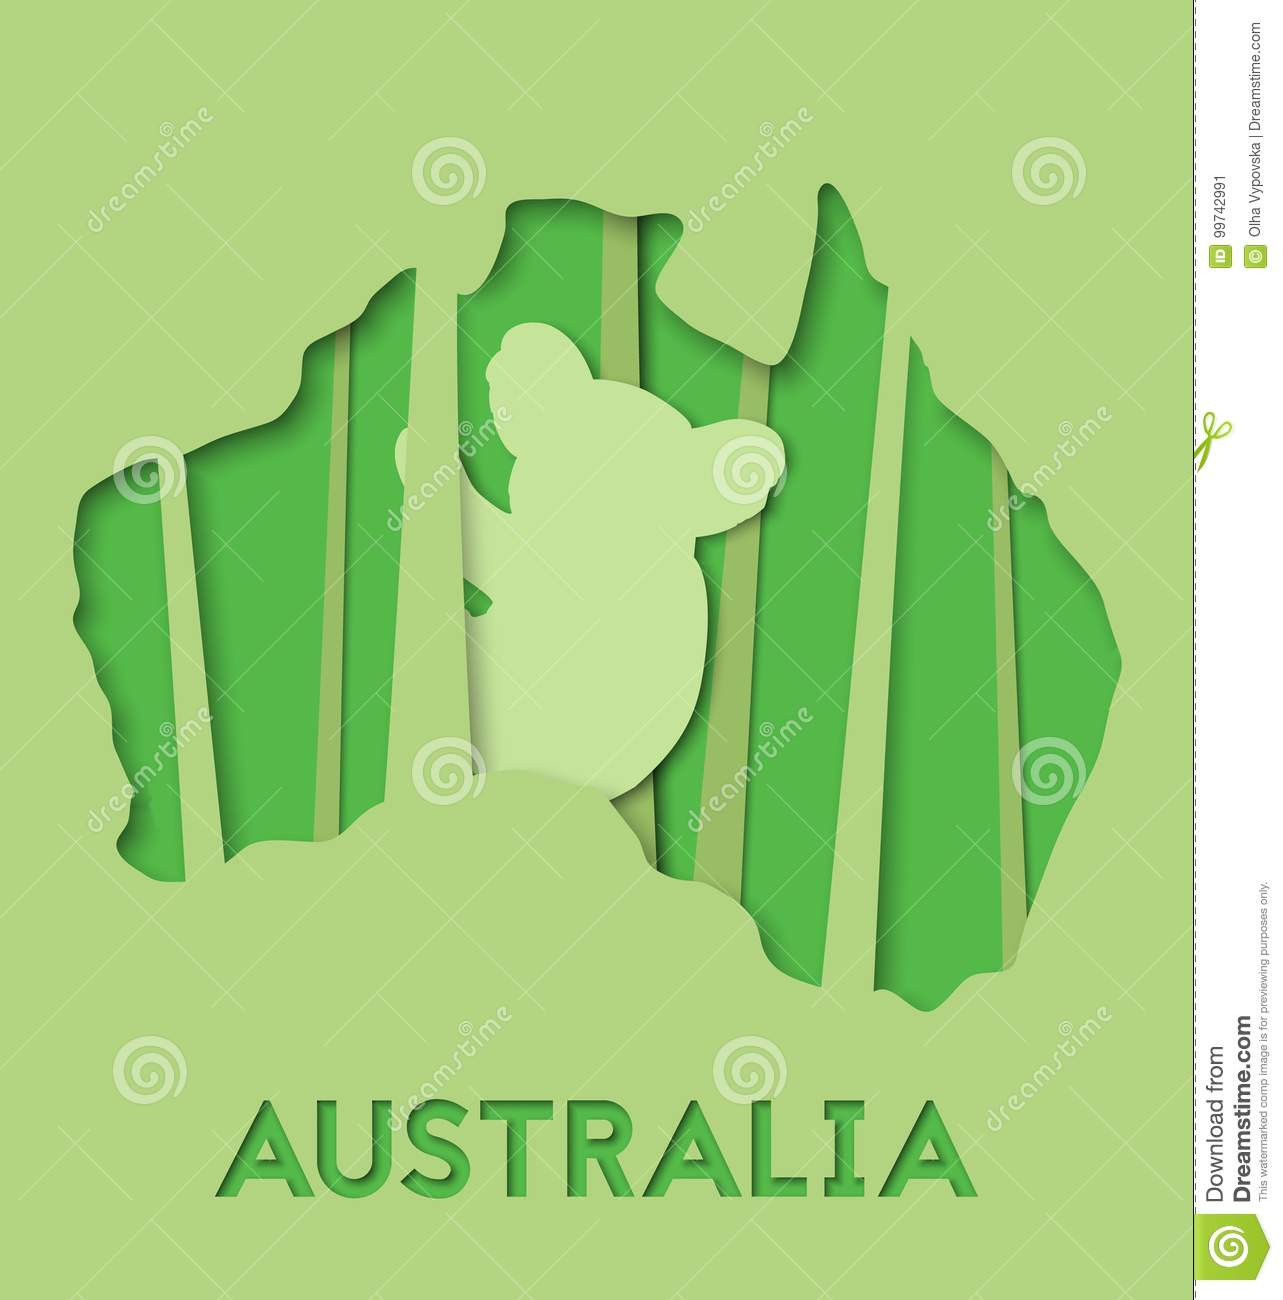 3d abstract paper illlustration of australia green map with koala